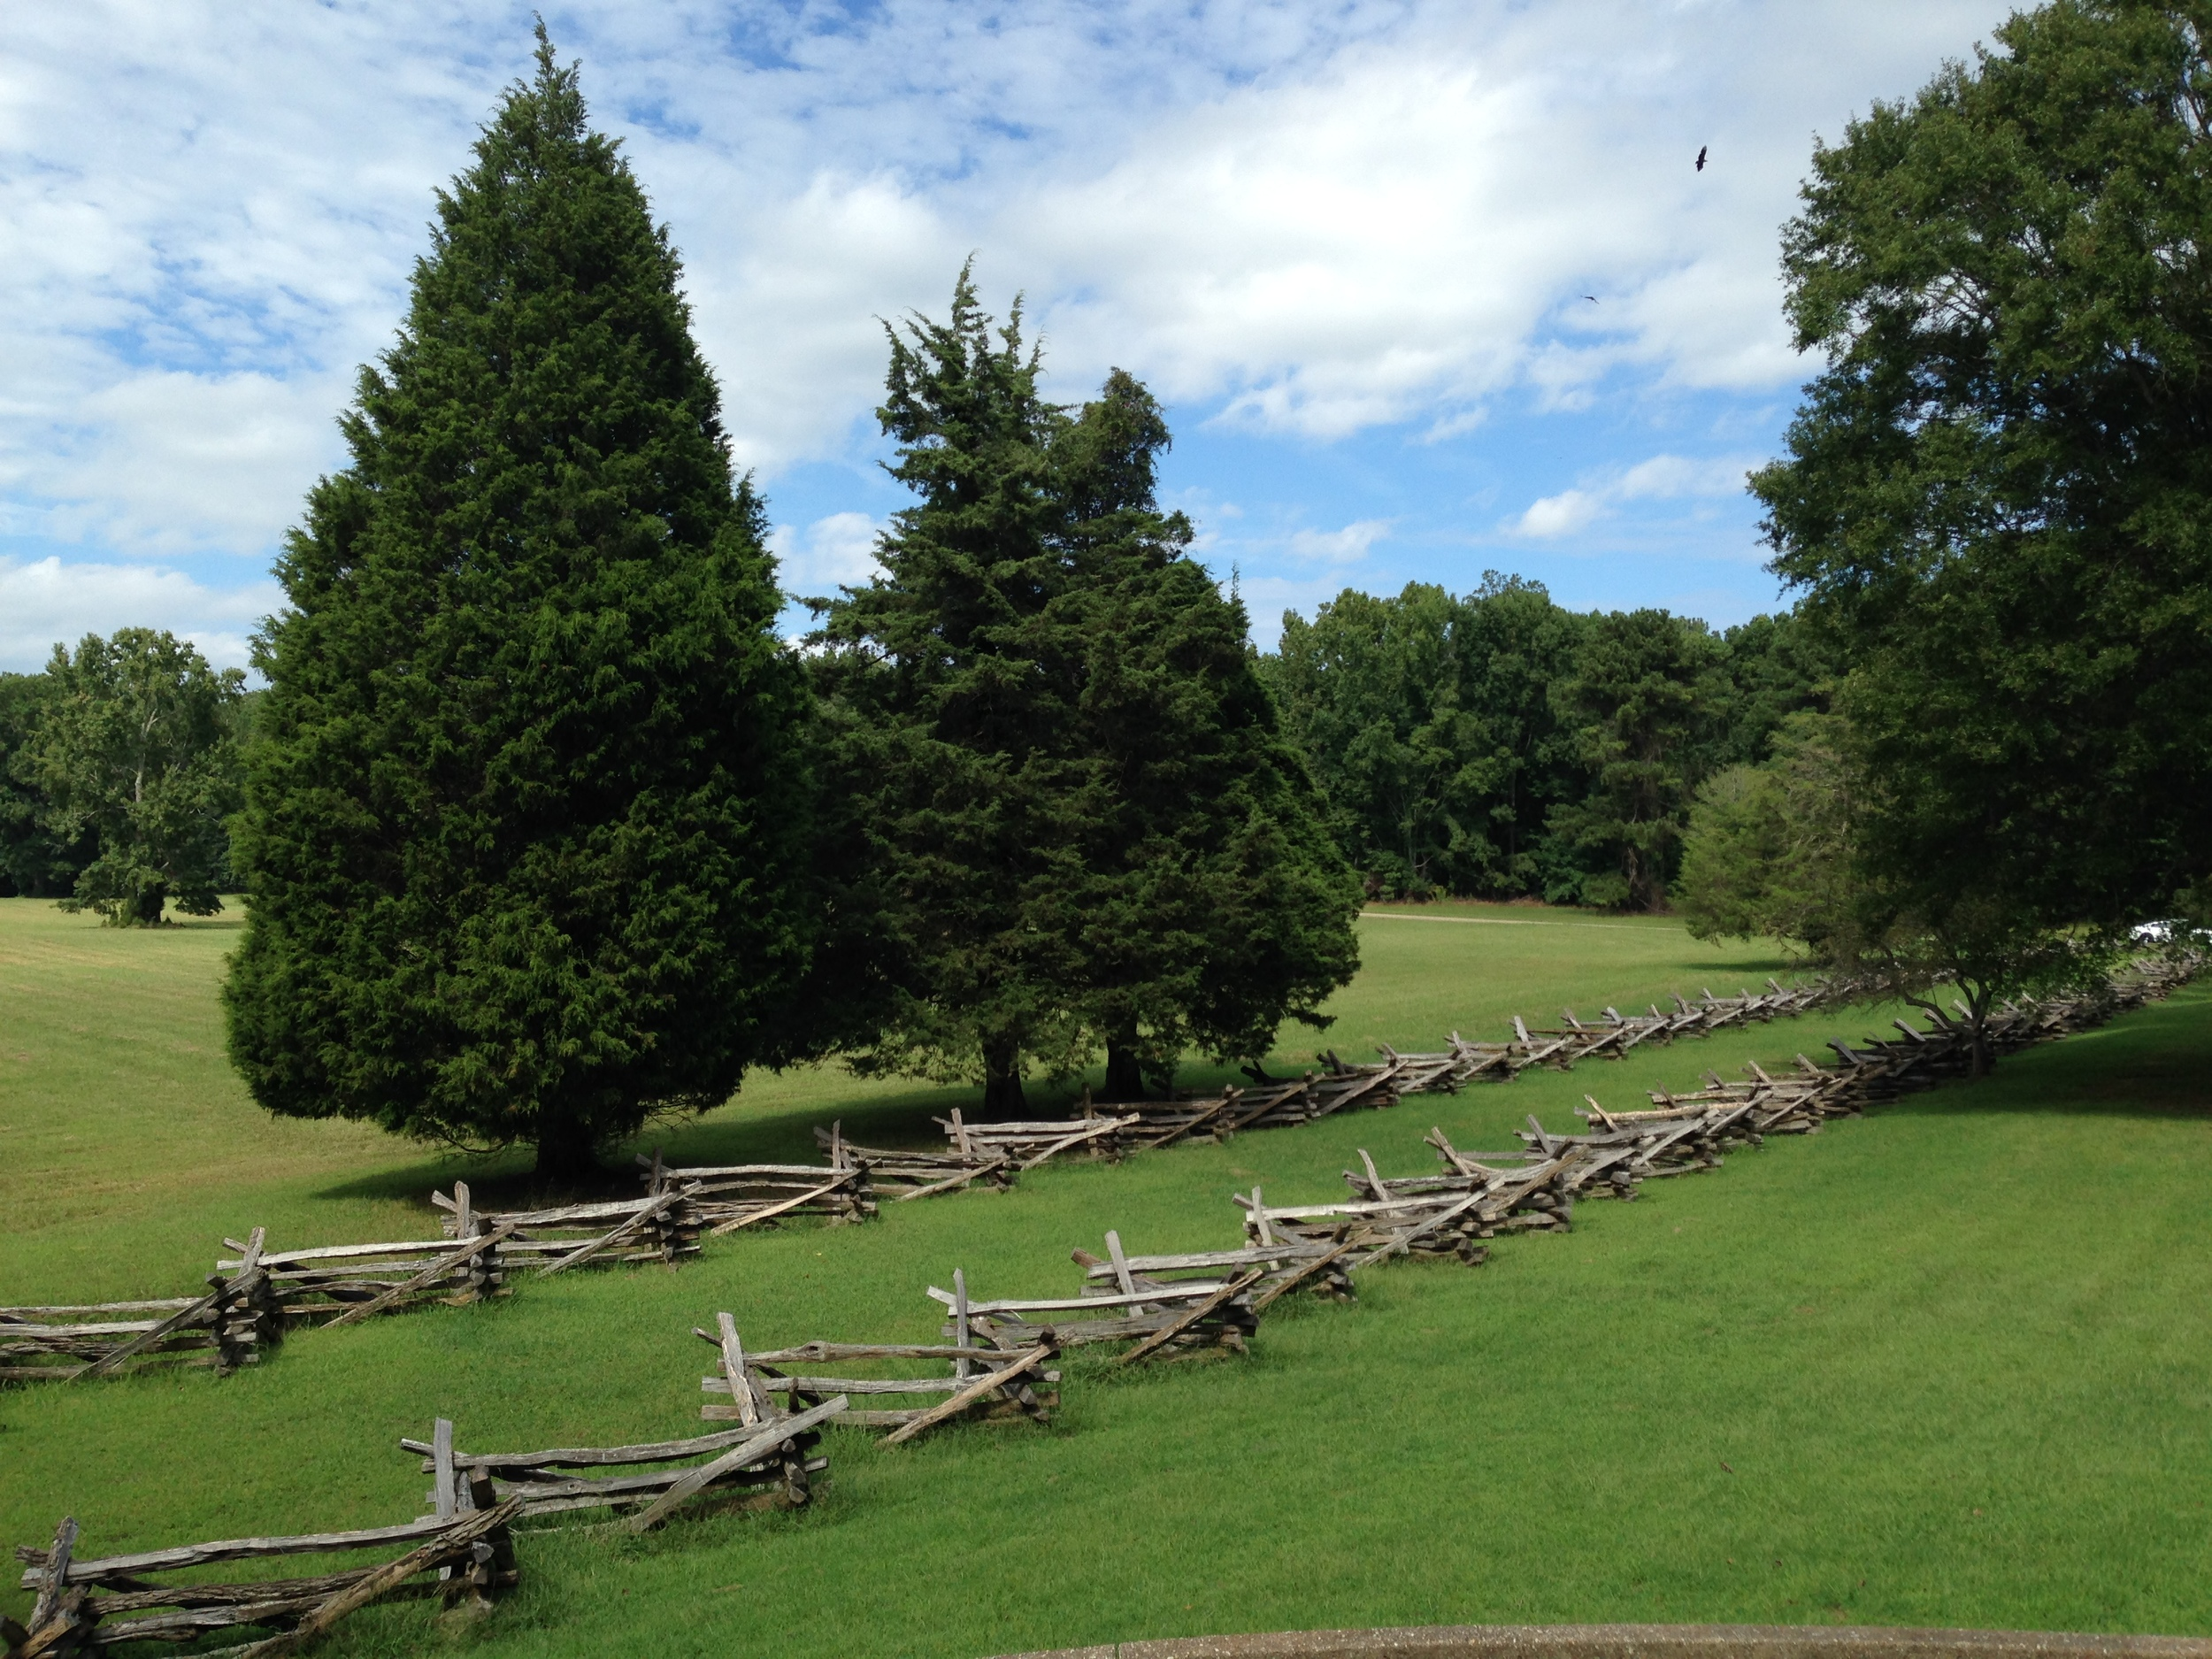 The surrender field.  The fence line marks the position in which the victorious French and American troops would have stood while the defeated British passed between enroute to surrendering their weapons.